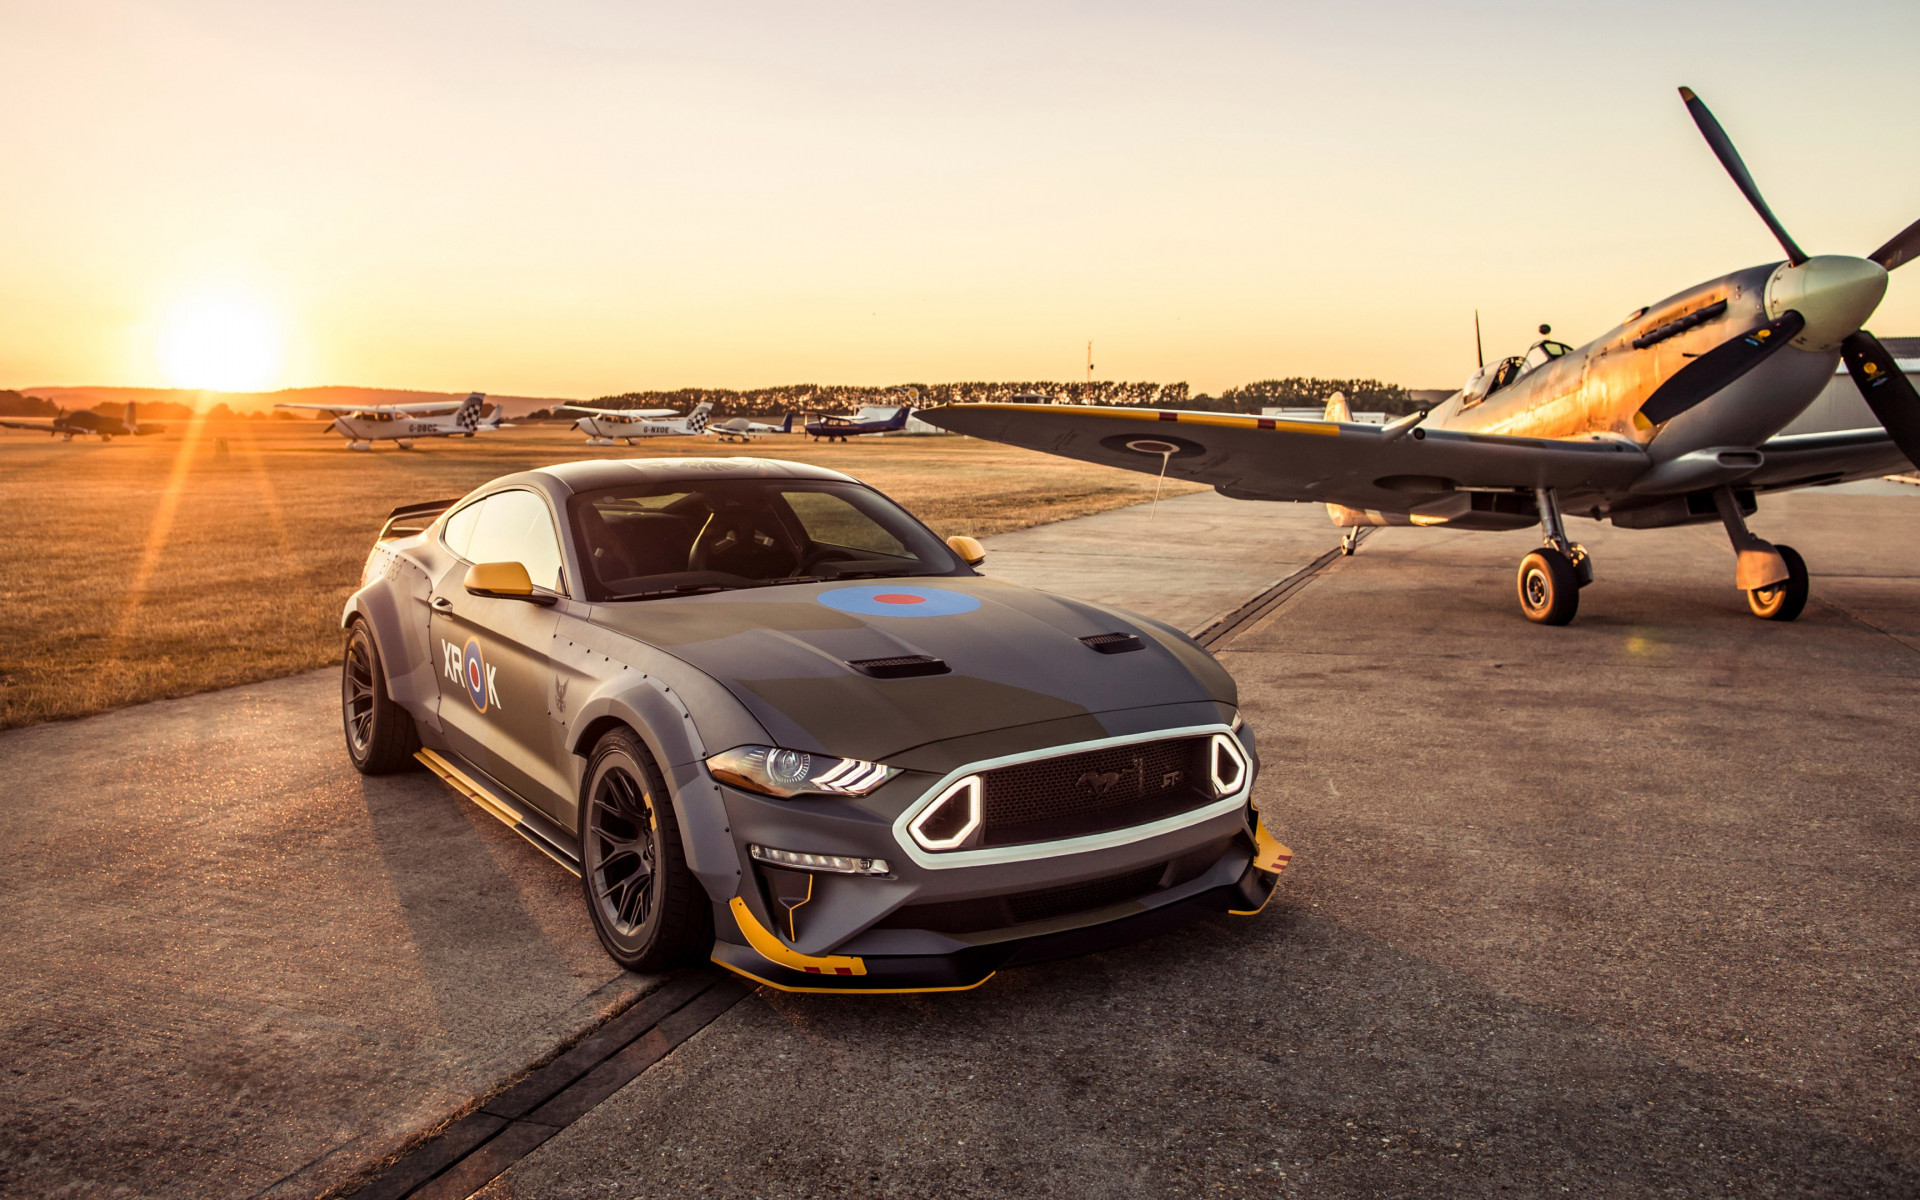 Ford Eagle Squadron Mustang GT wallpaper 1920x1200